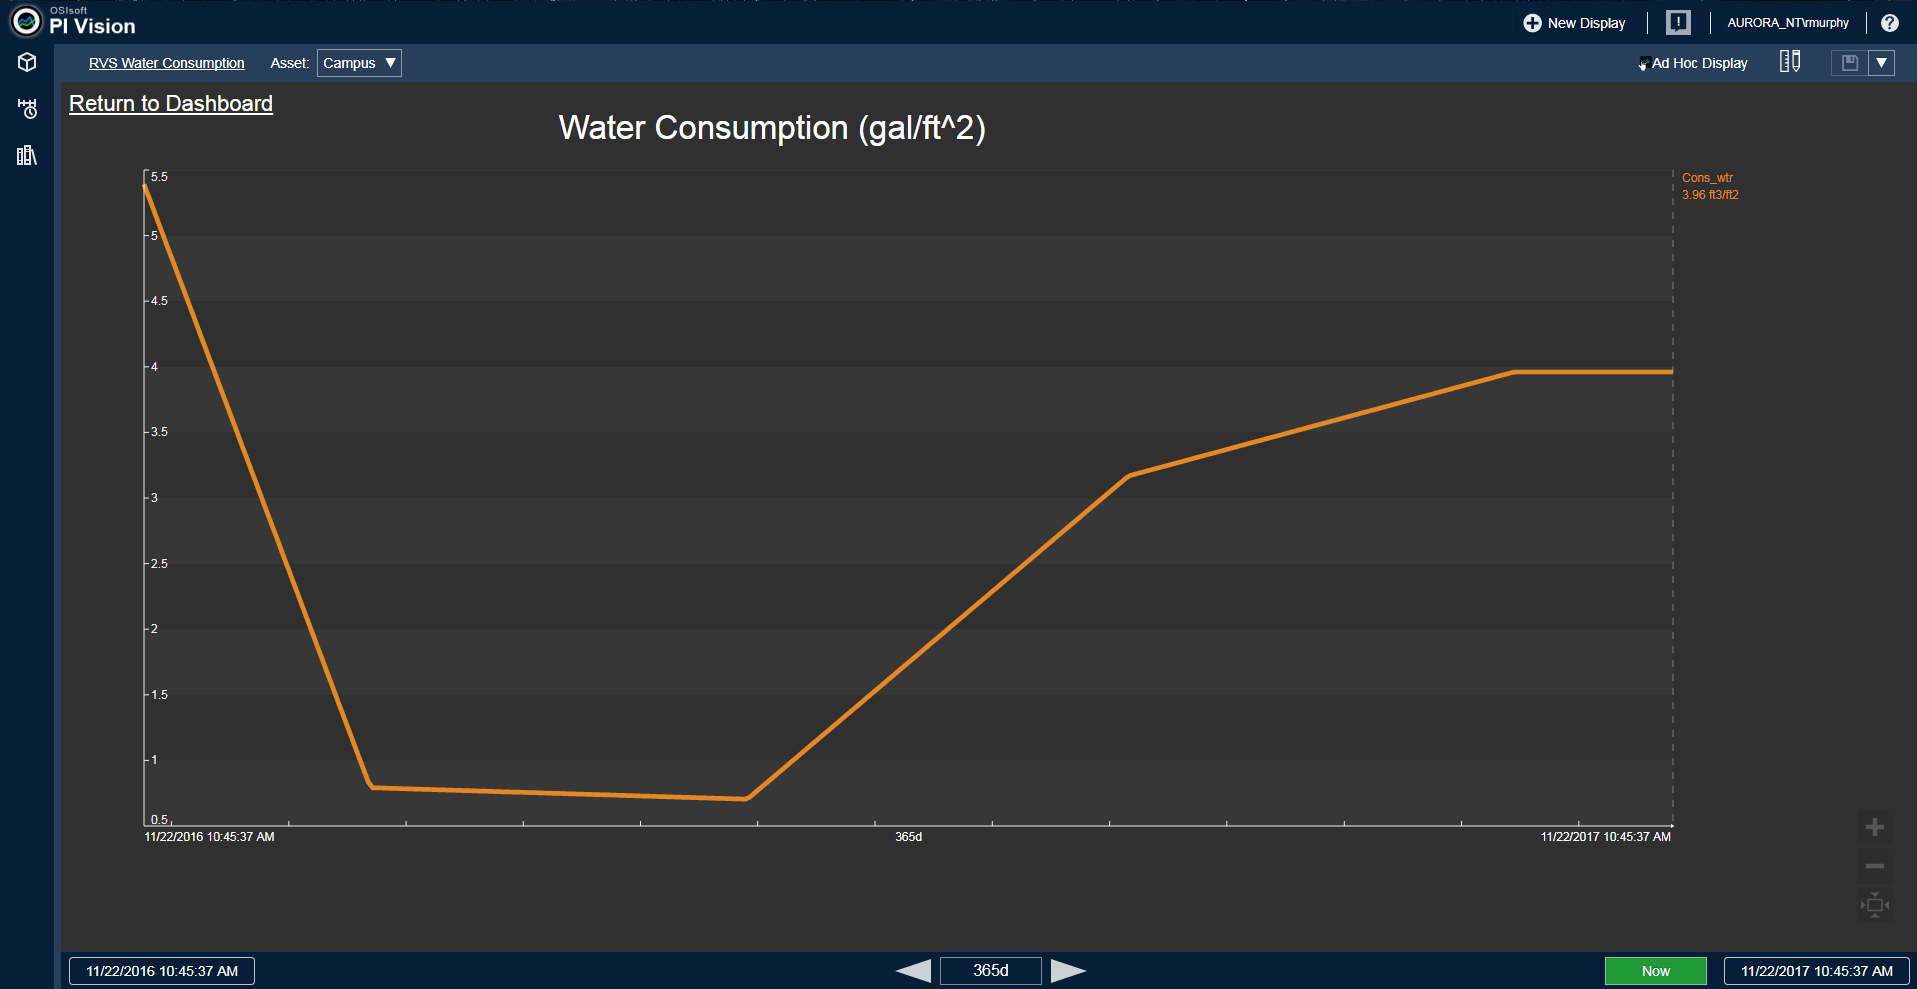 Facility Water Consumption